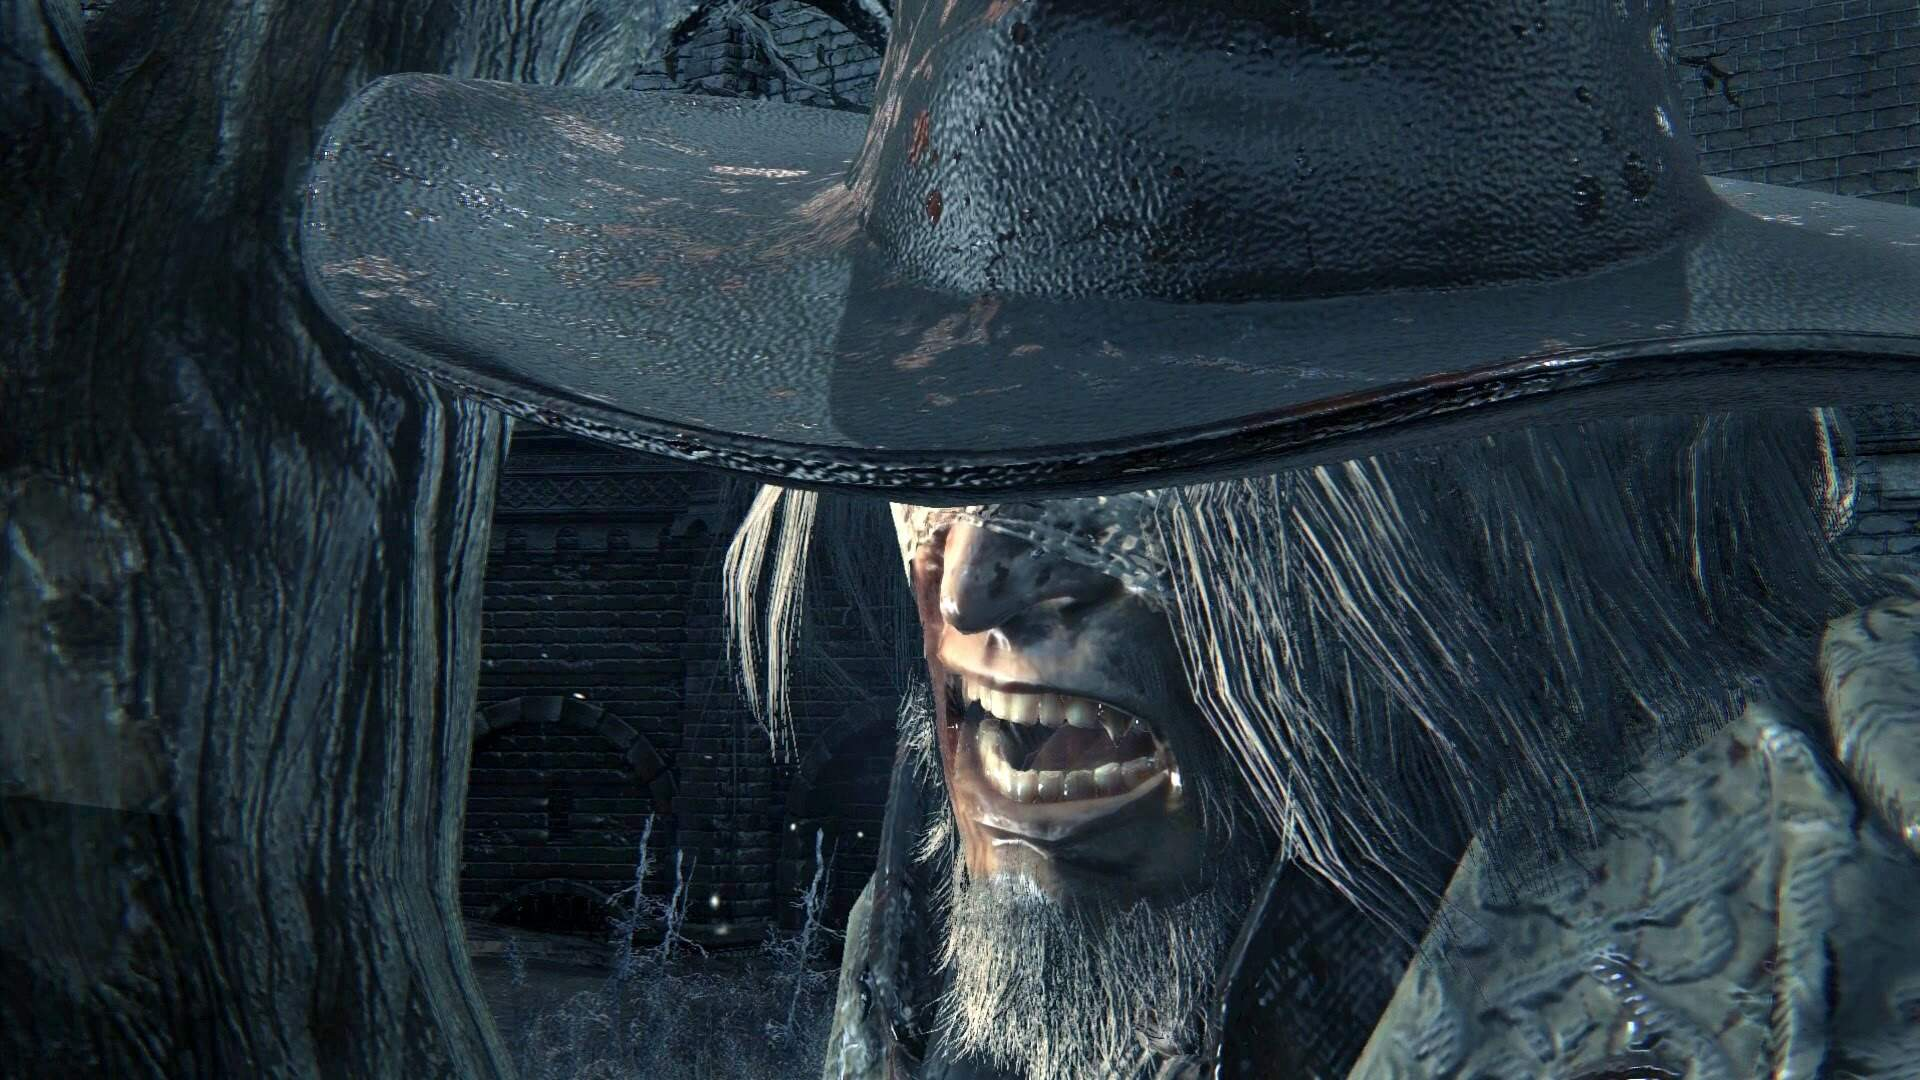 Bloodborne Remaster Rumors Gain Traction, But Don't Quite Match Bluepoint's Previous Comments